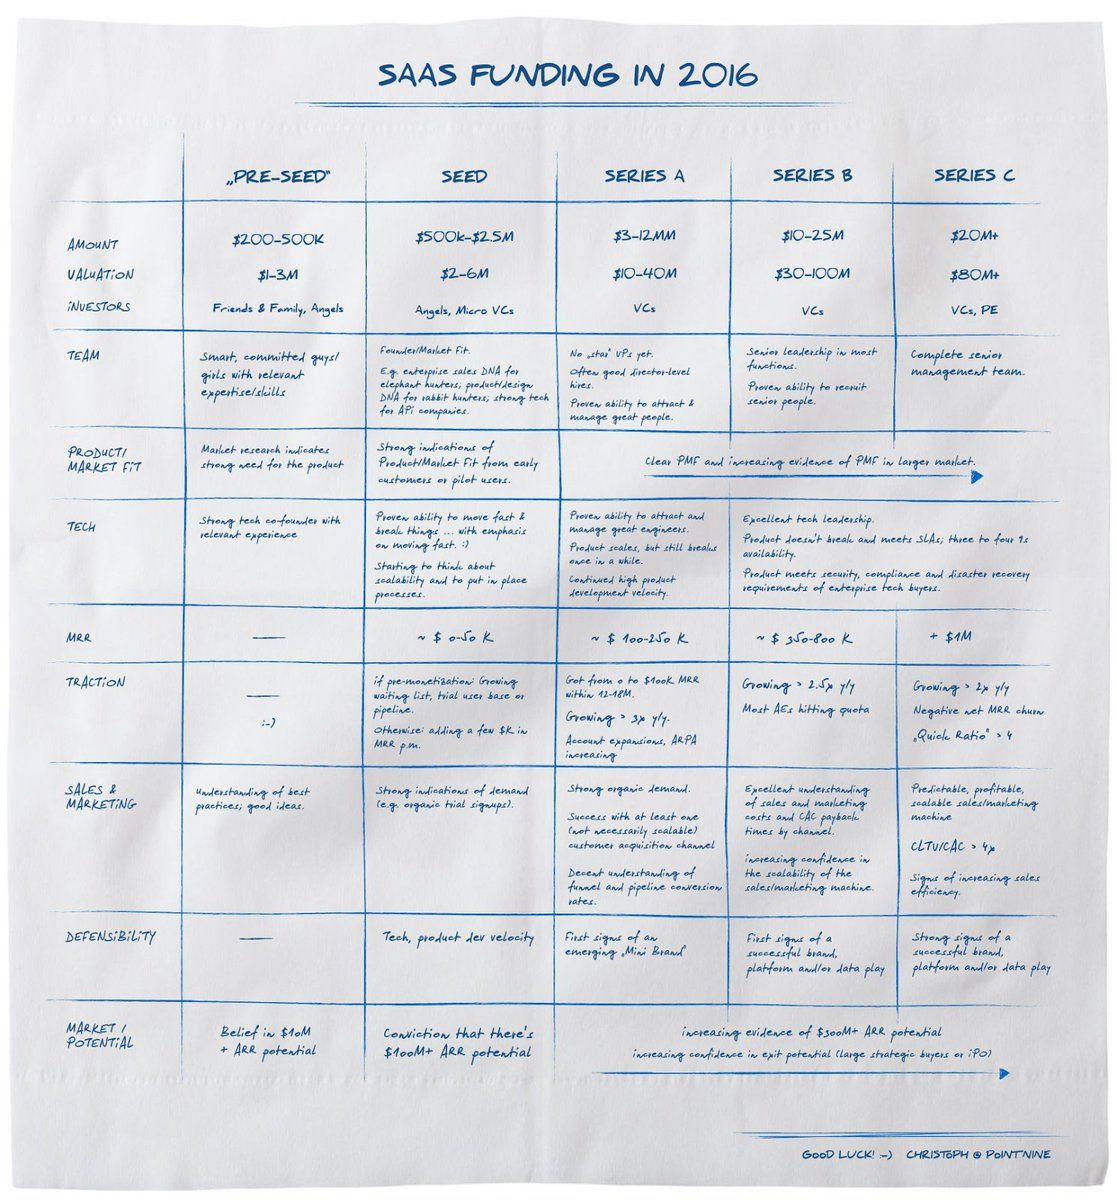 SaaS Funding Napkin: Find out if your SaaS startup is ready to get funded https://t.co/aH7IHObuNF https://t.co/V82e2hi23y